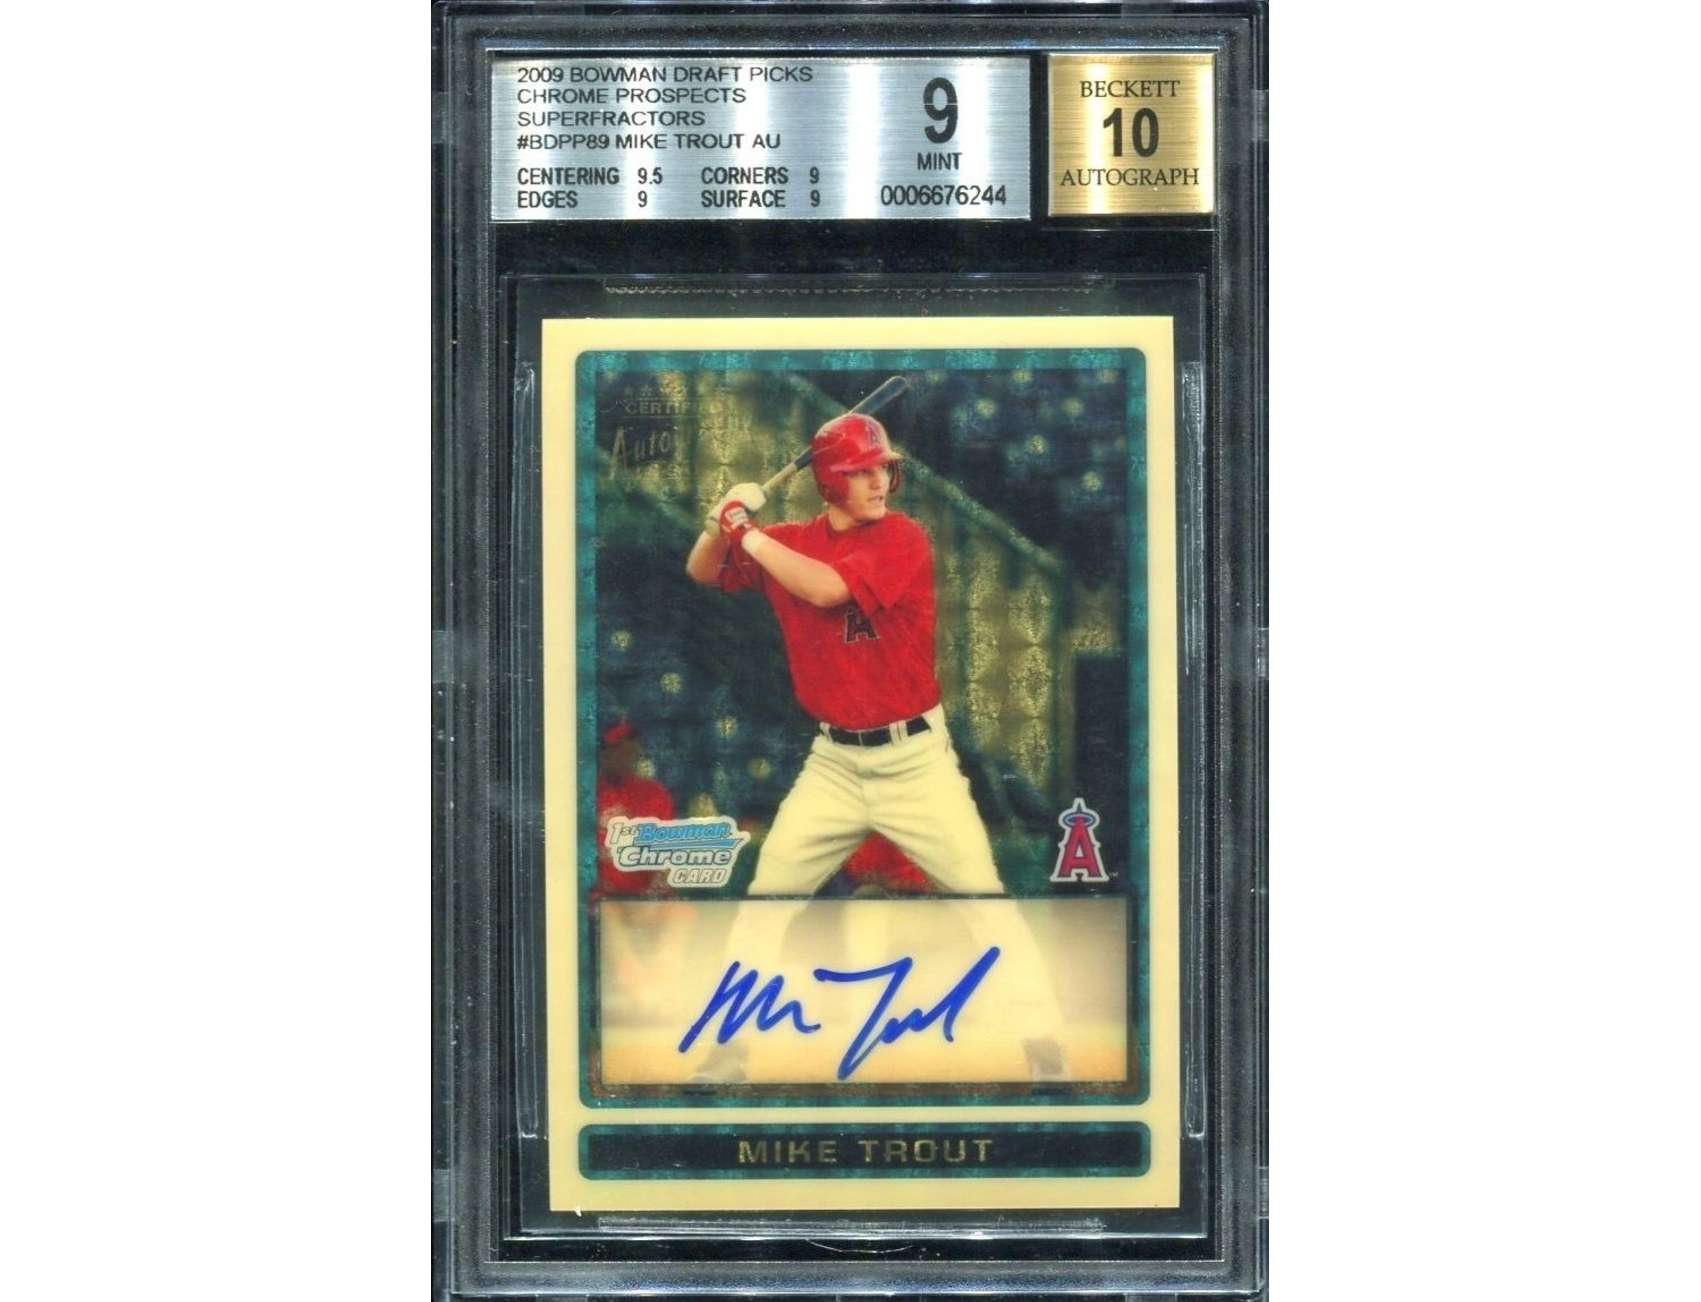 The Mike Trout Autographed Superfractor Rookie Card 1 Of 1